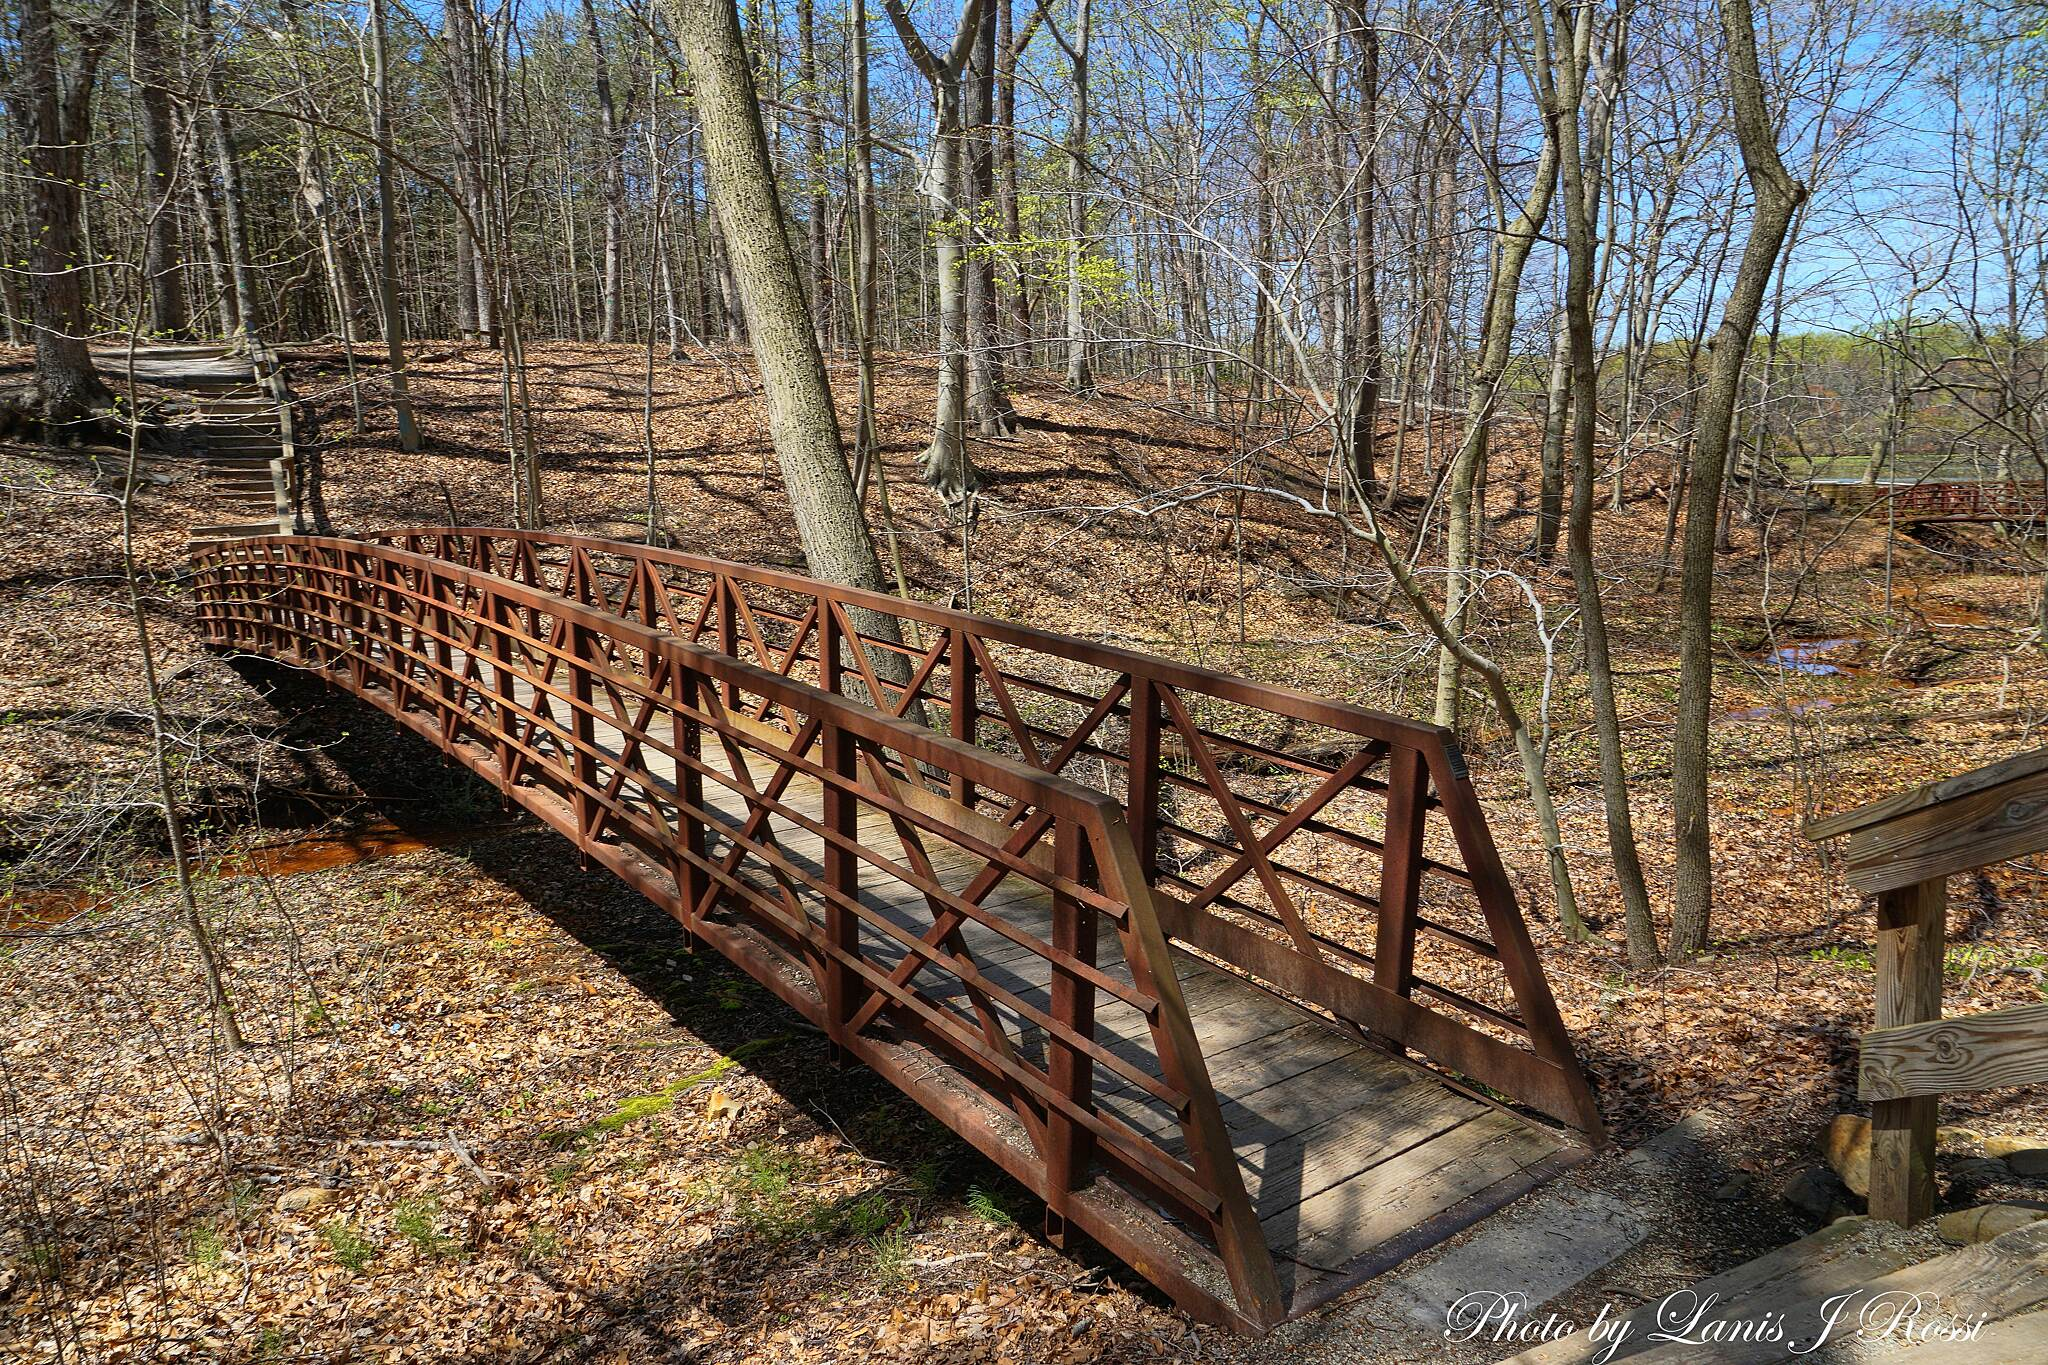 Historic Smithville Park Trails Cross Over The Bridge Historic Smithville Park Trail